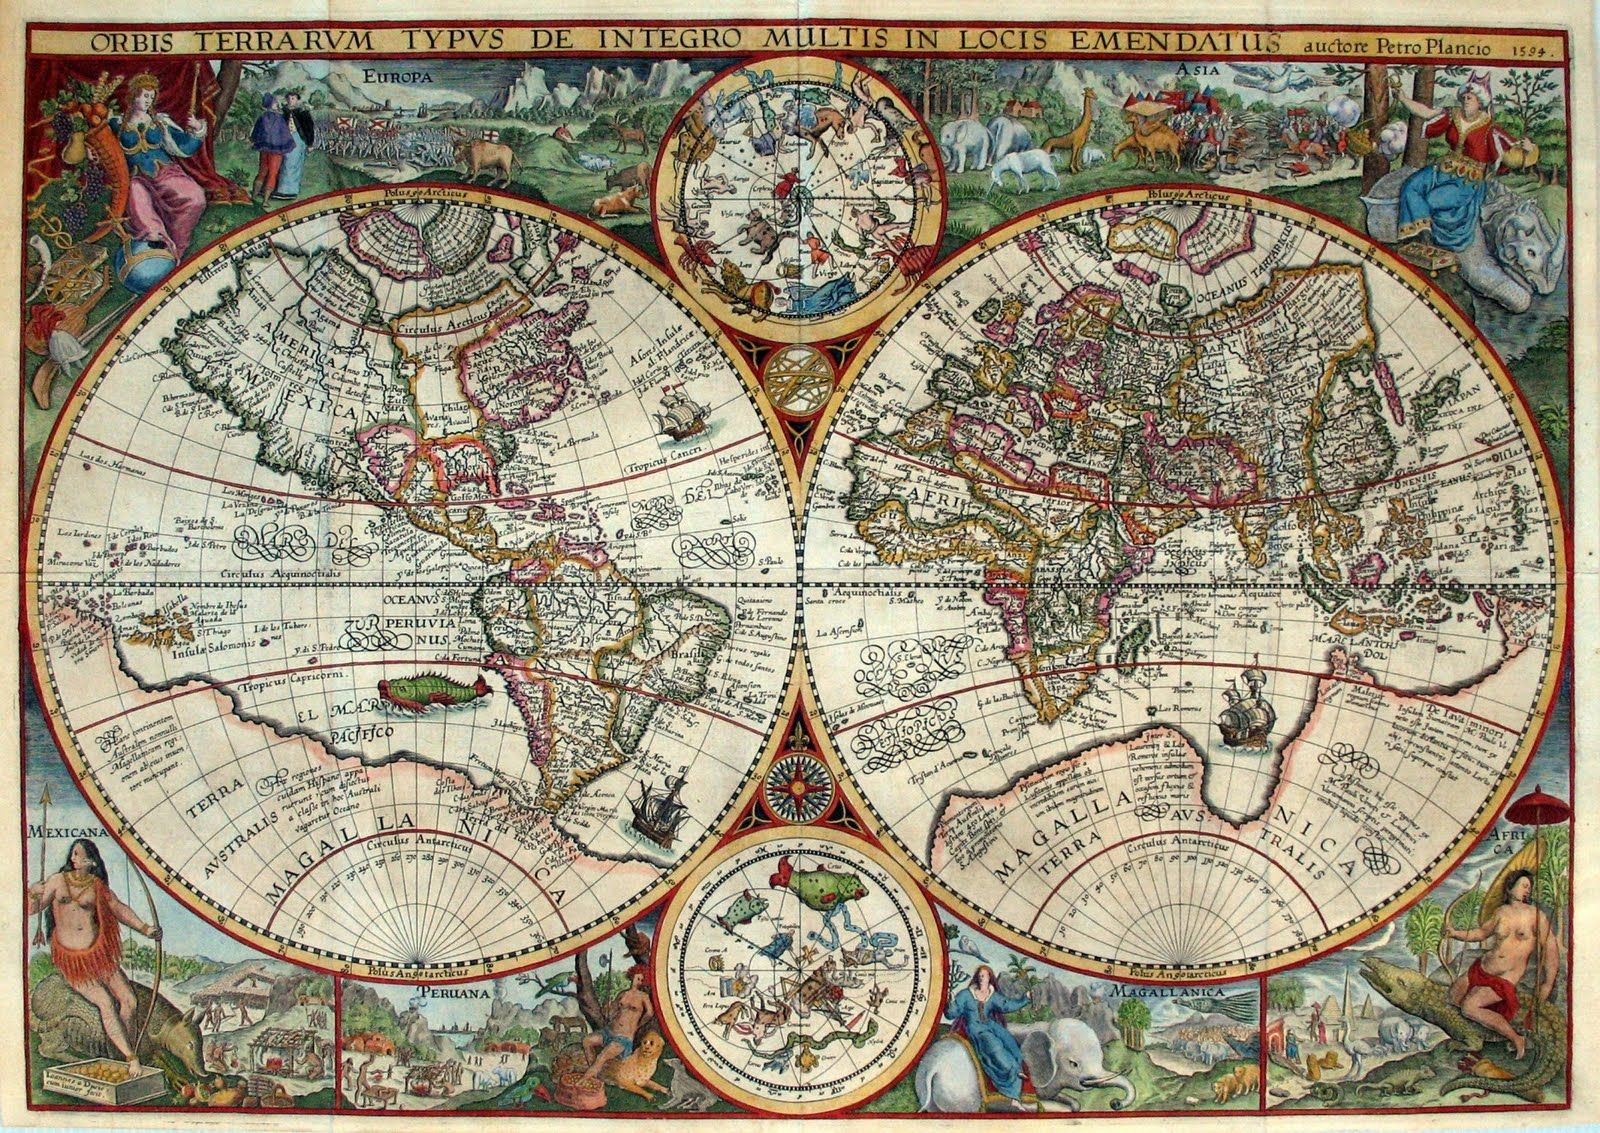 World map 16th century ancient world map description orbis world map 16th century ancient world map description orbis terrarum published by the dutch astronomer cartographer and clergyman petrus plancius in 1594 gumiabroncs Image collections